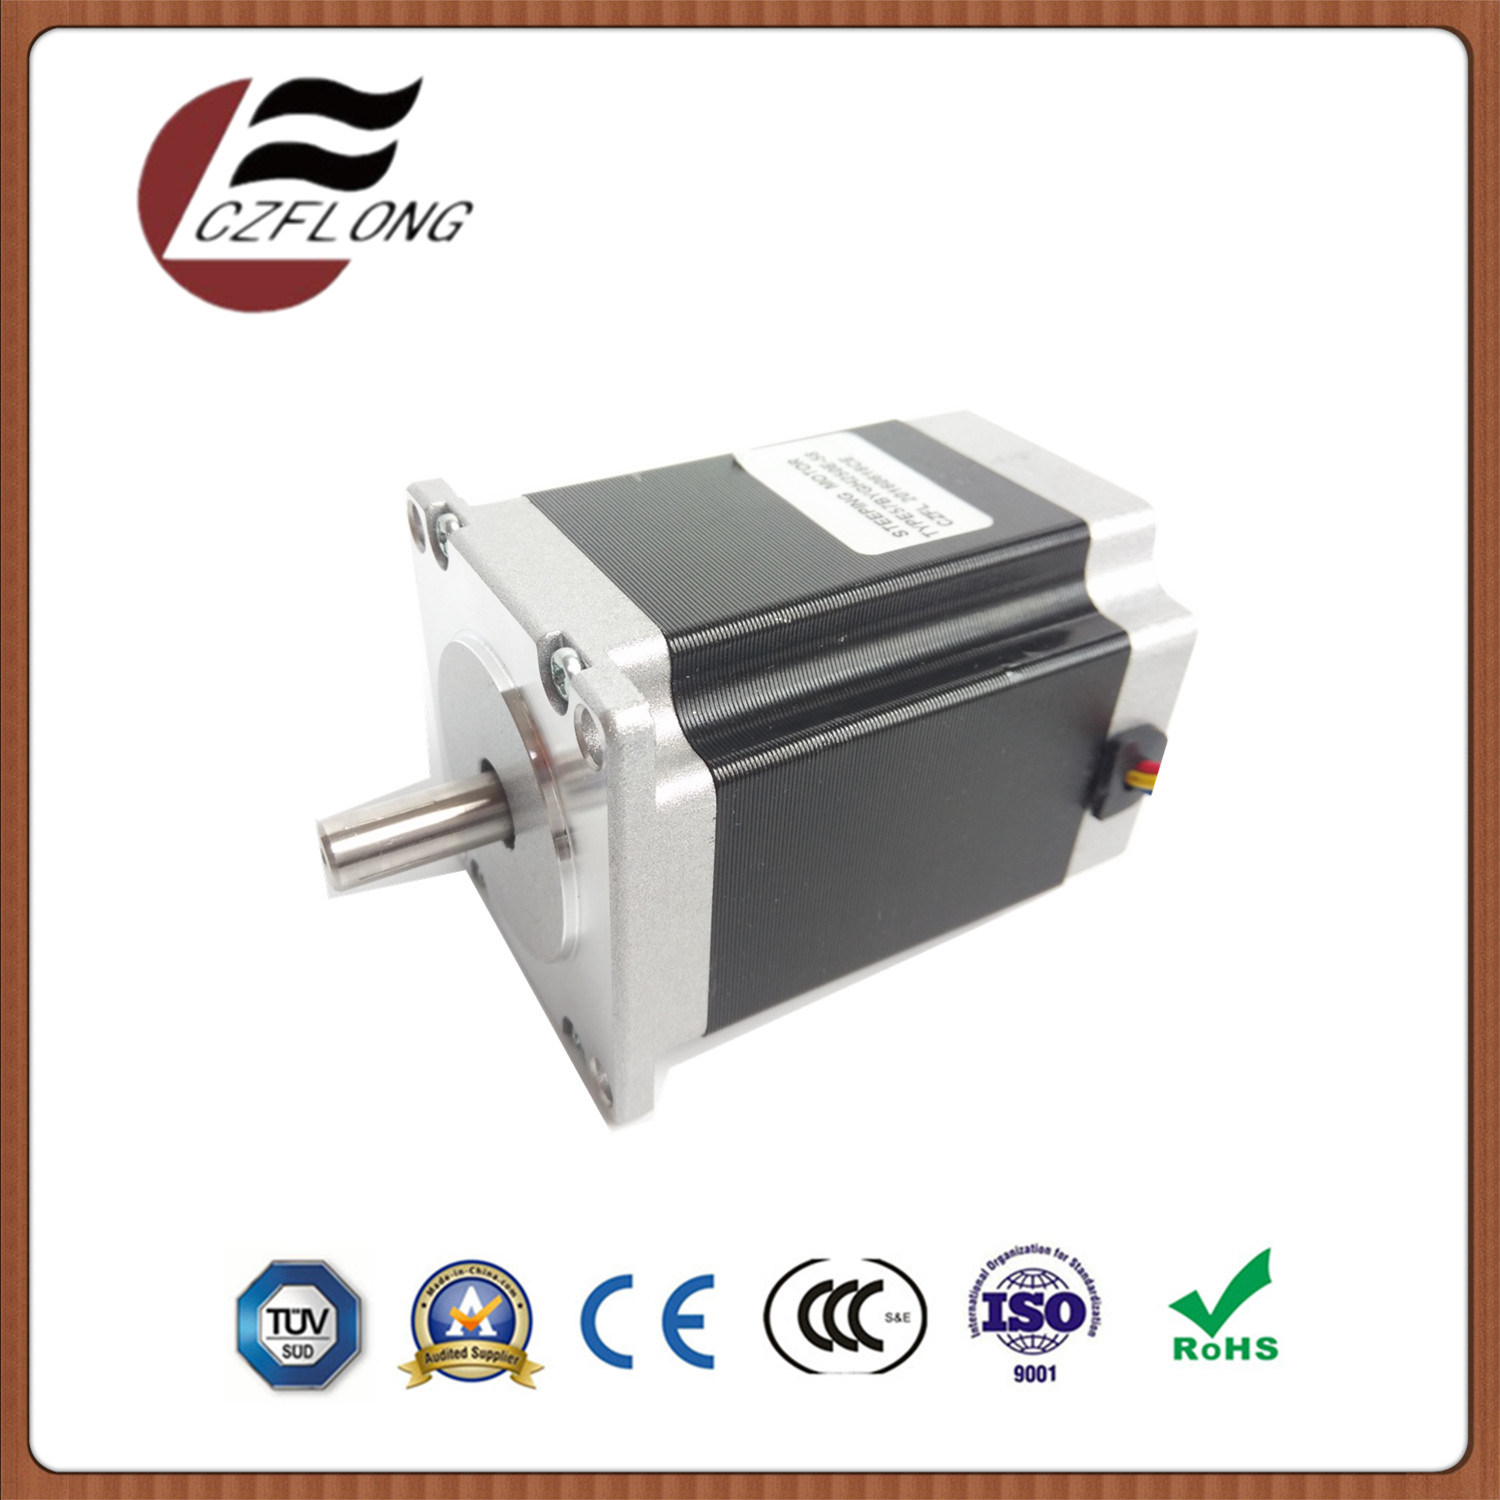 86*86mm Hybrid NEMA34 1.8 Deg Stepper Motor for CNC Machine